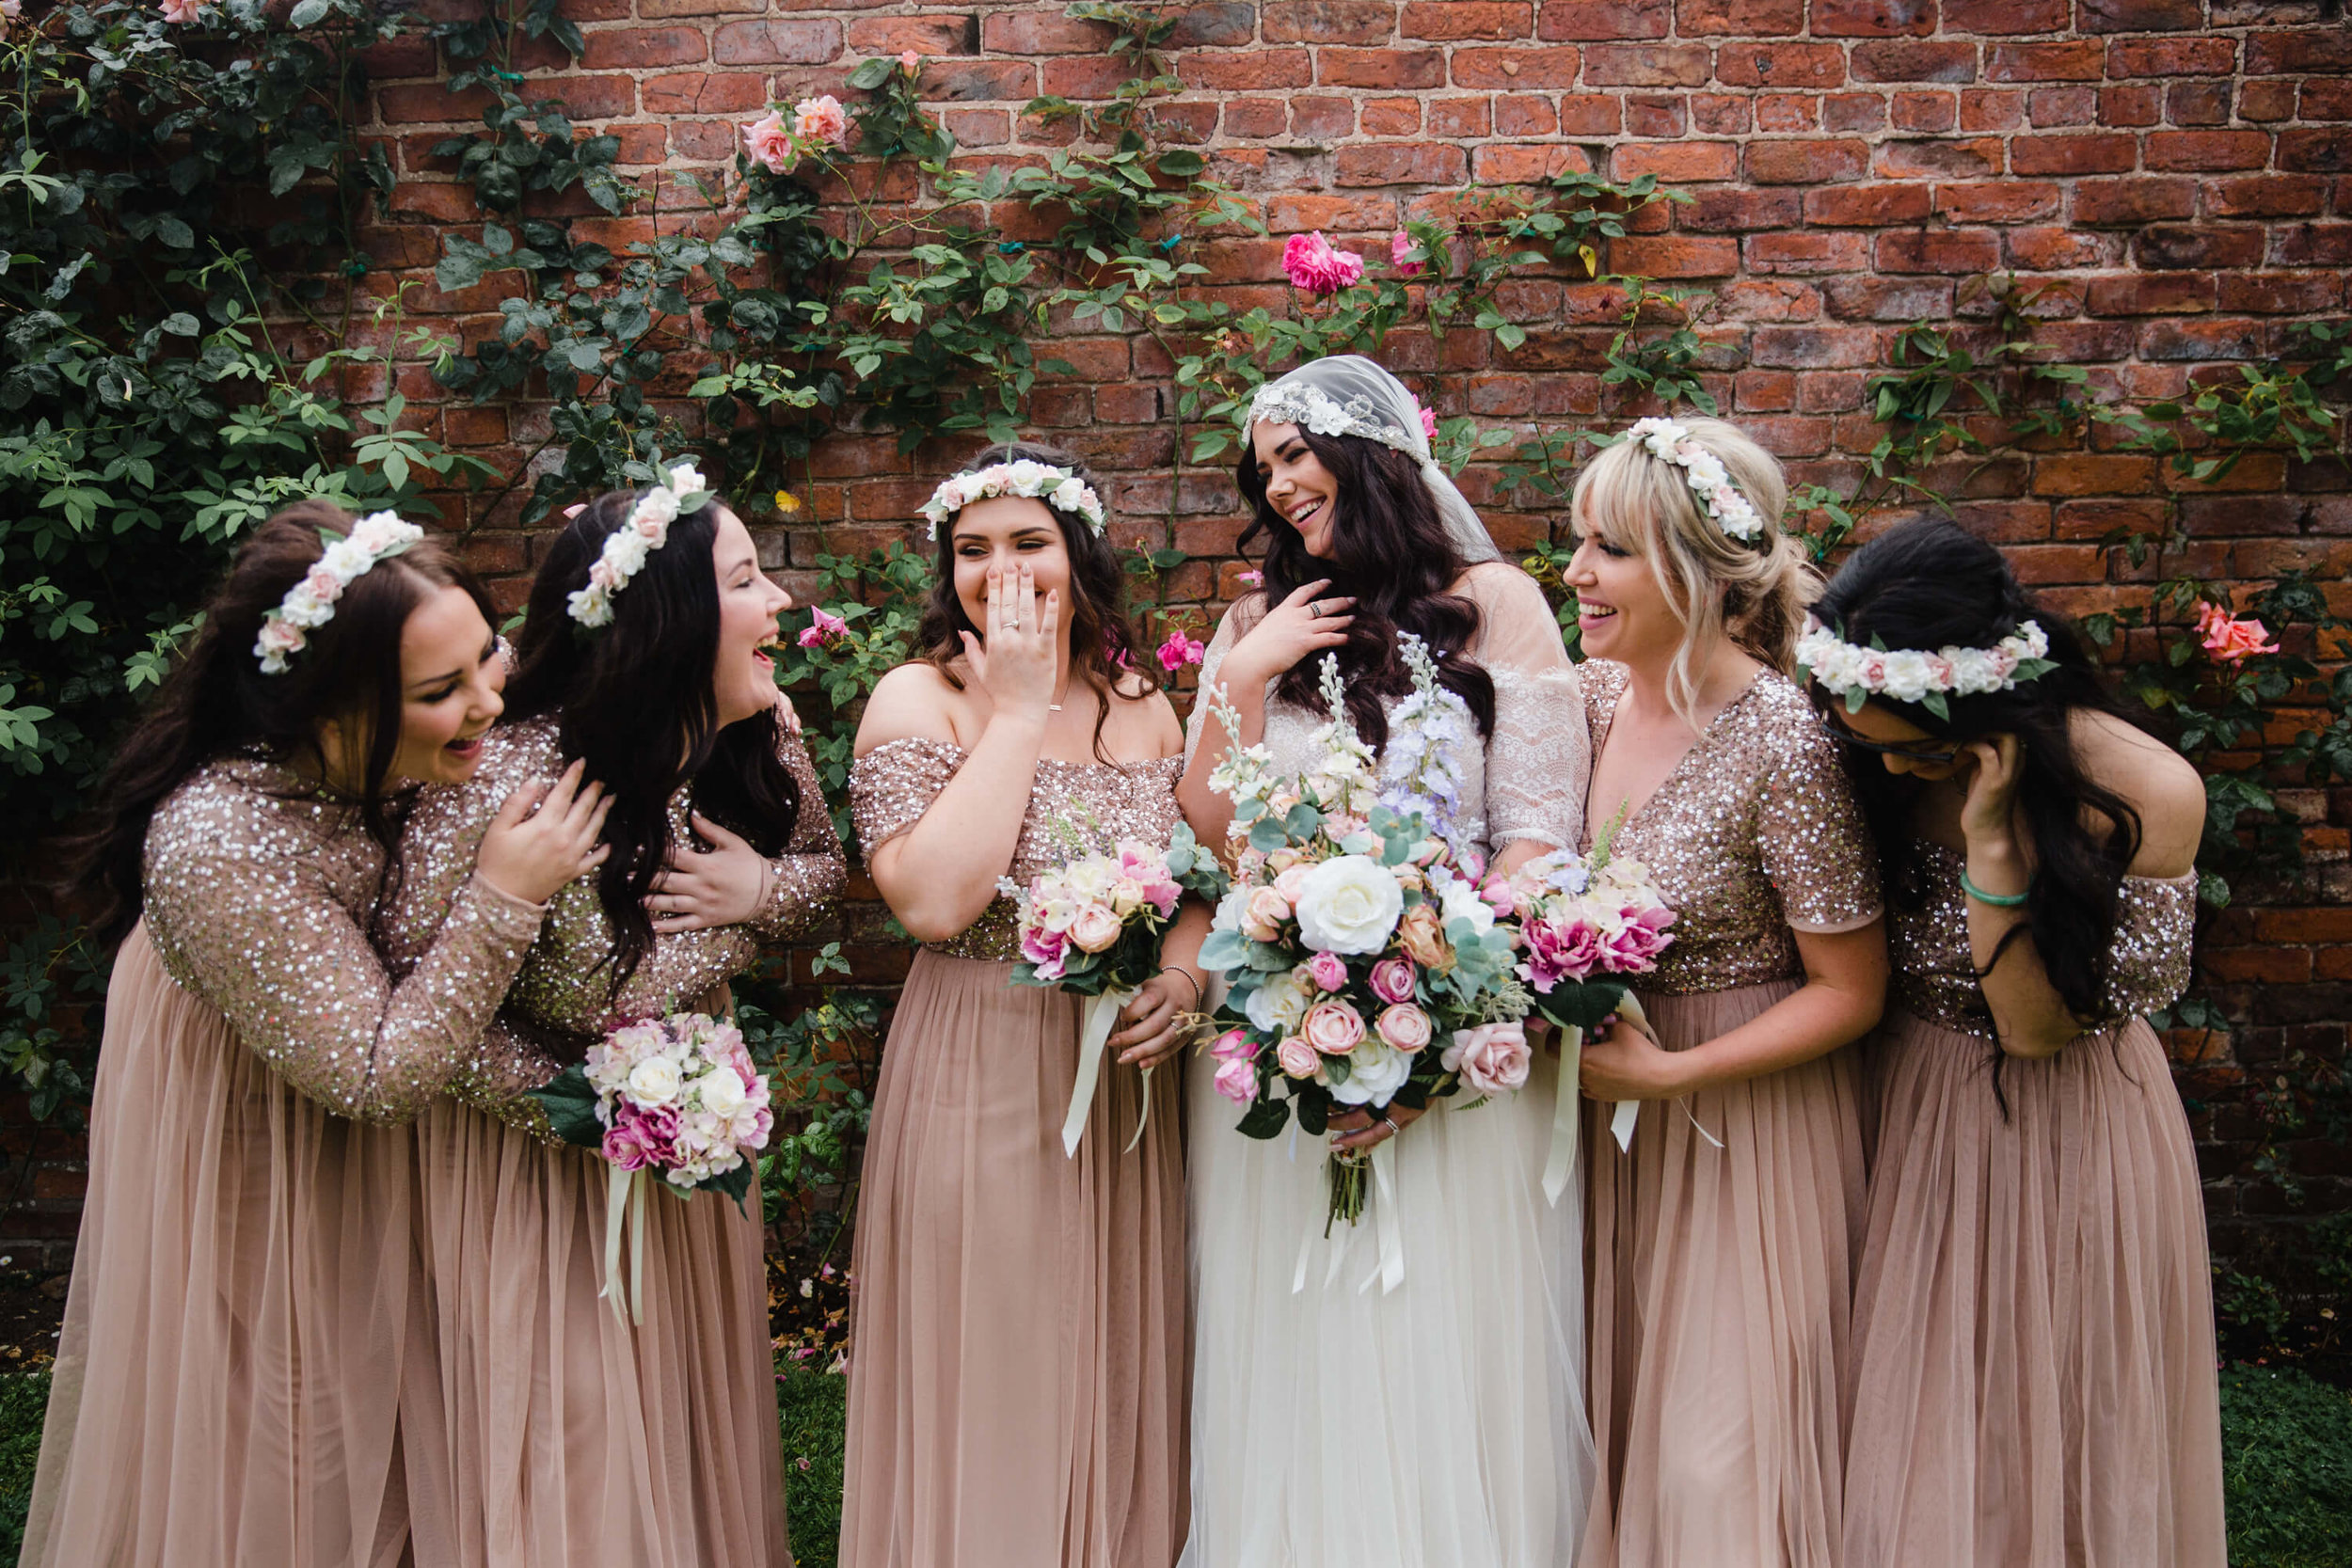 bride sharing a natural moment with bridesmaids while all holding bouquets